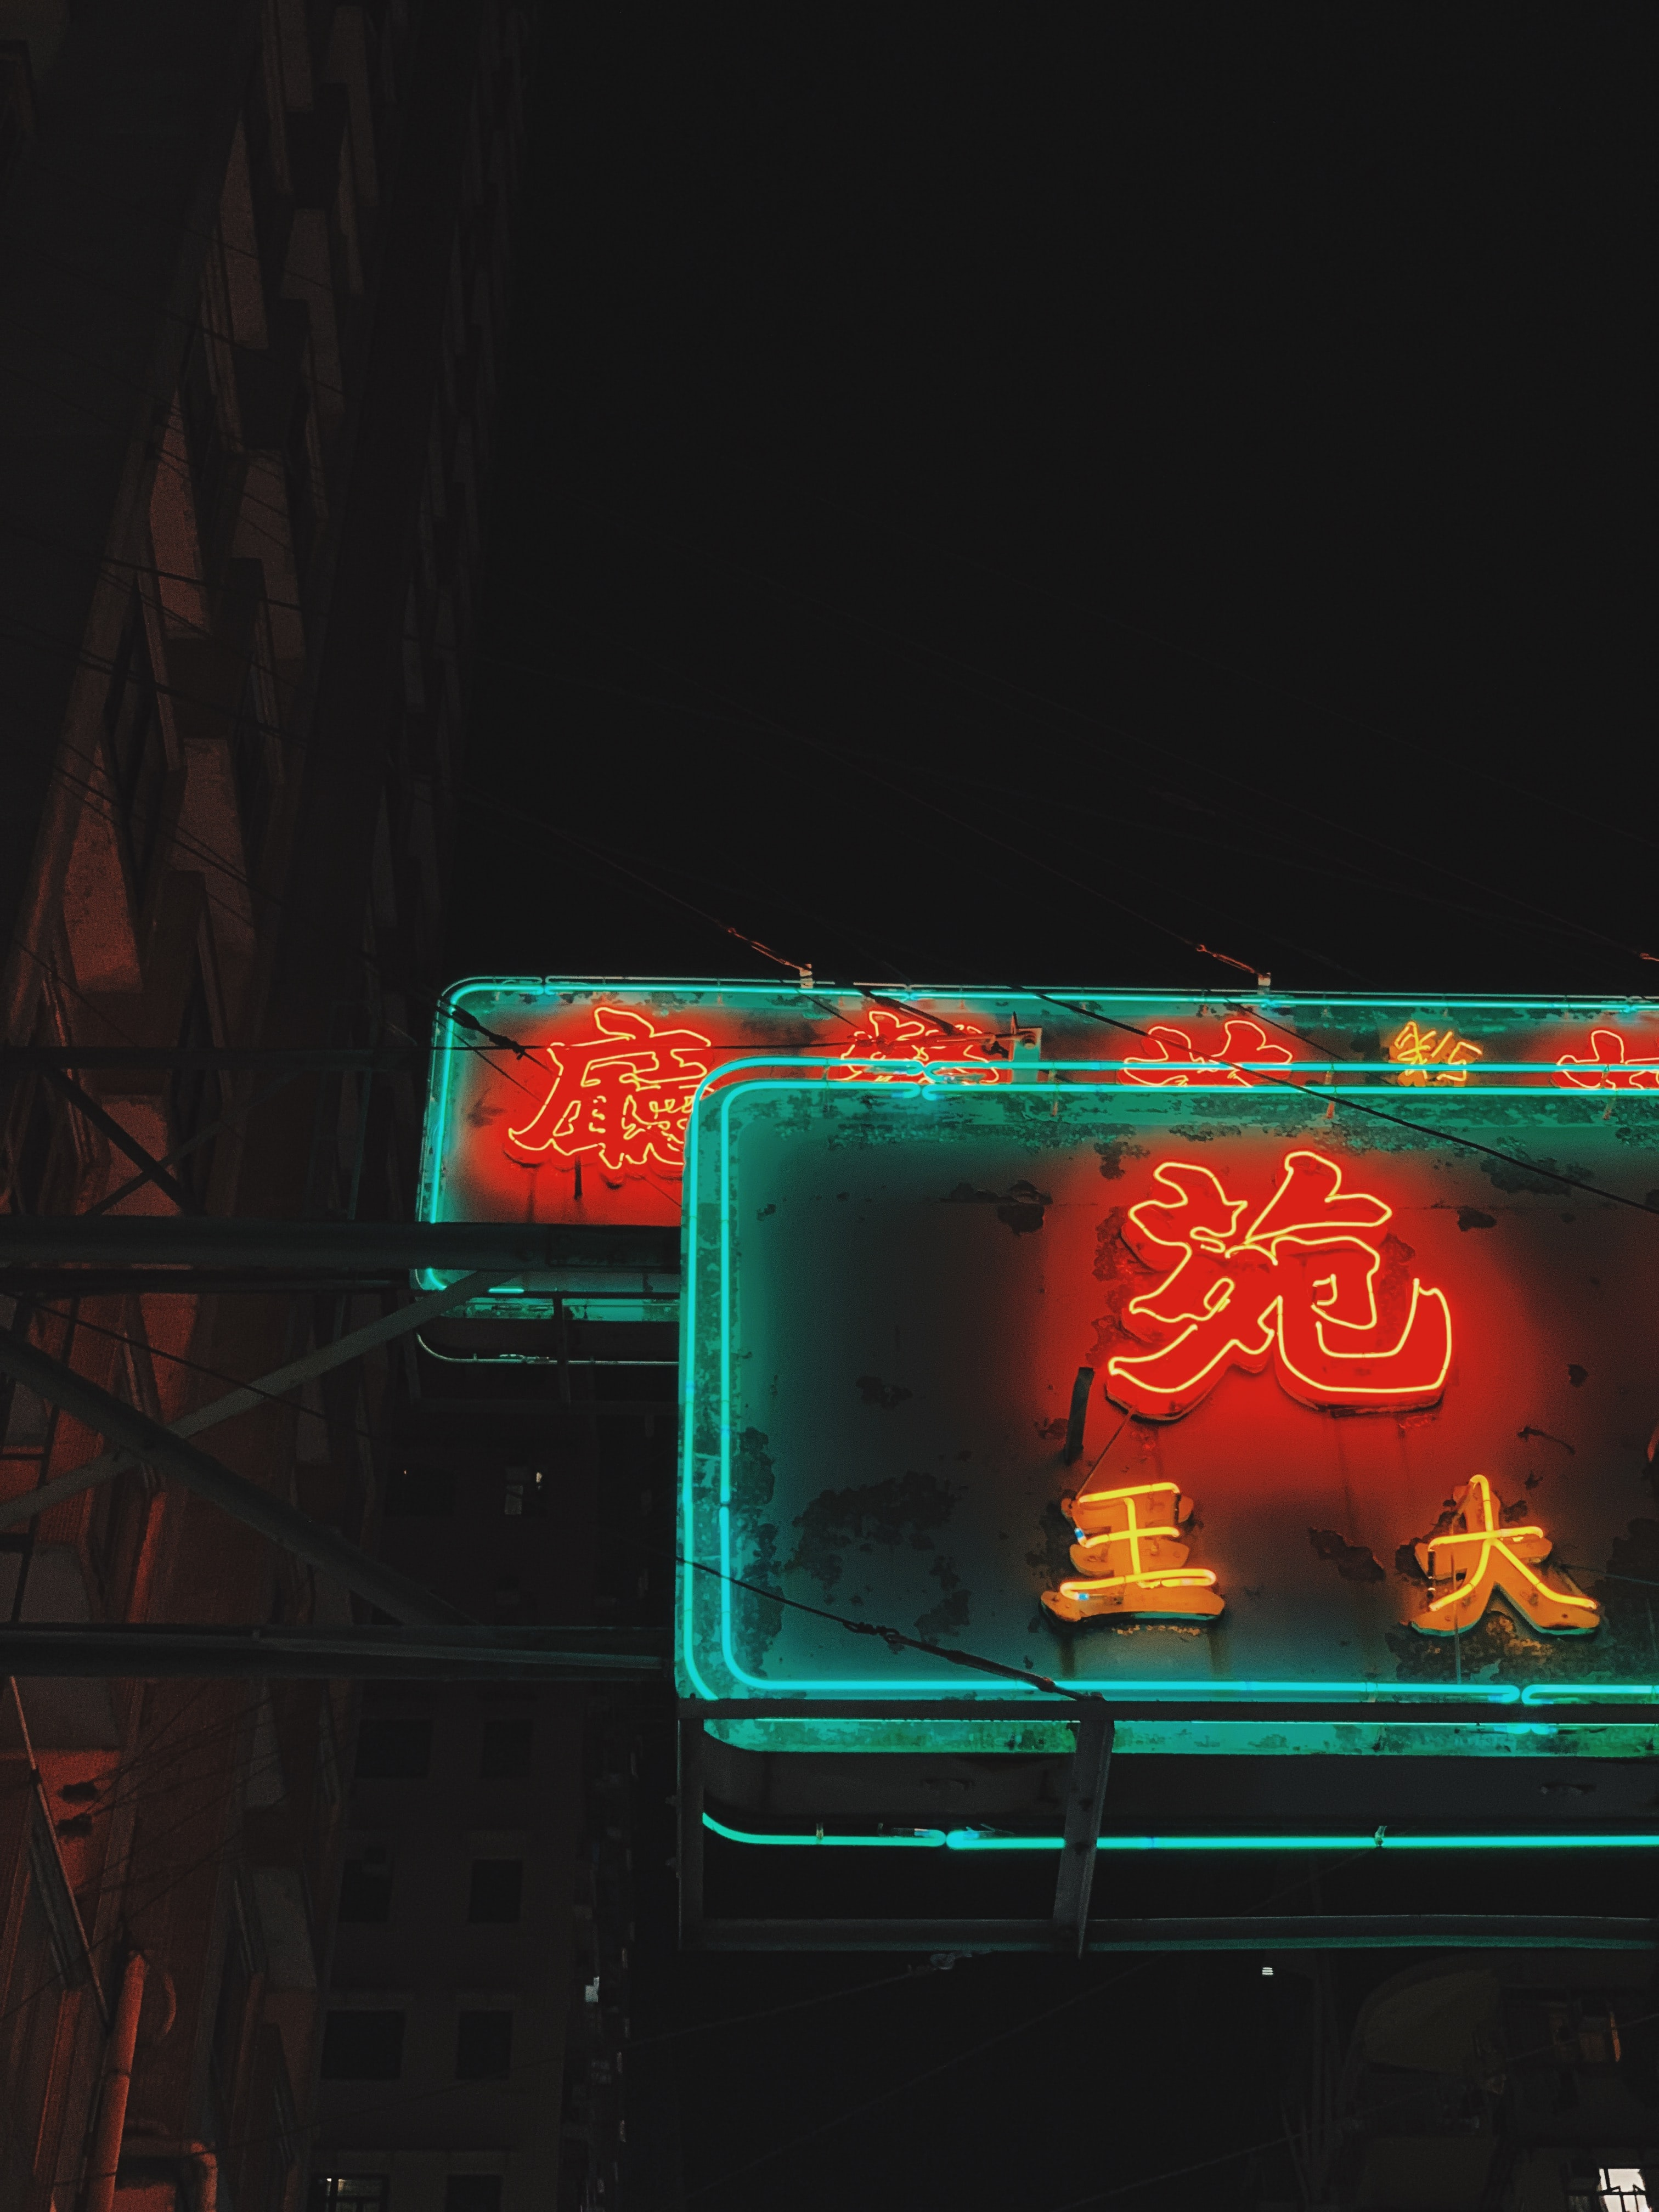 blue and red Kanji text neon light signage